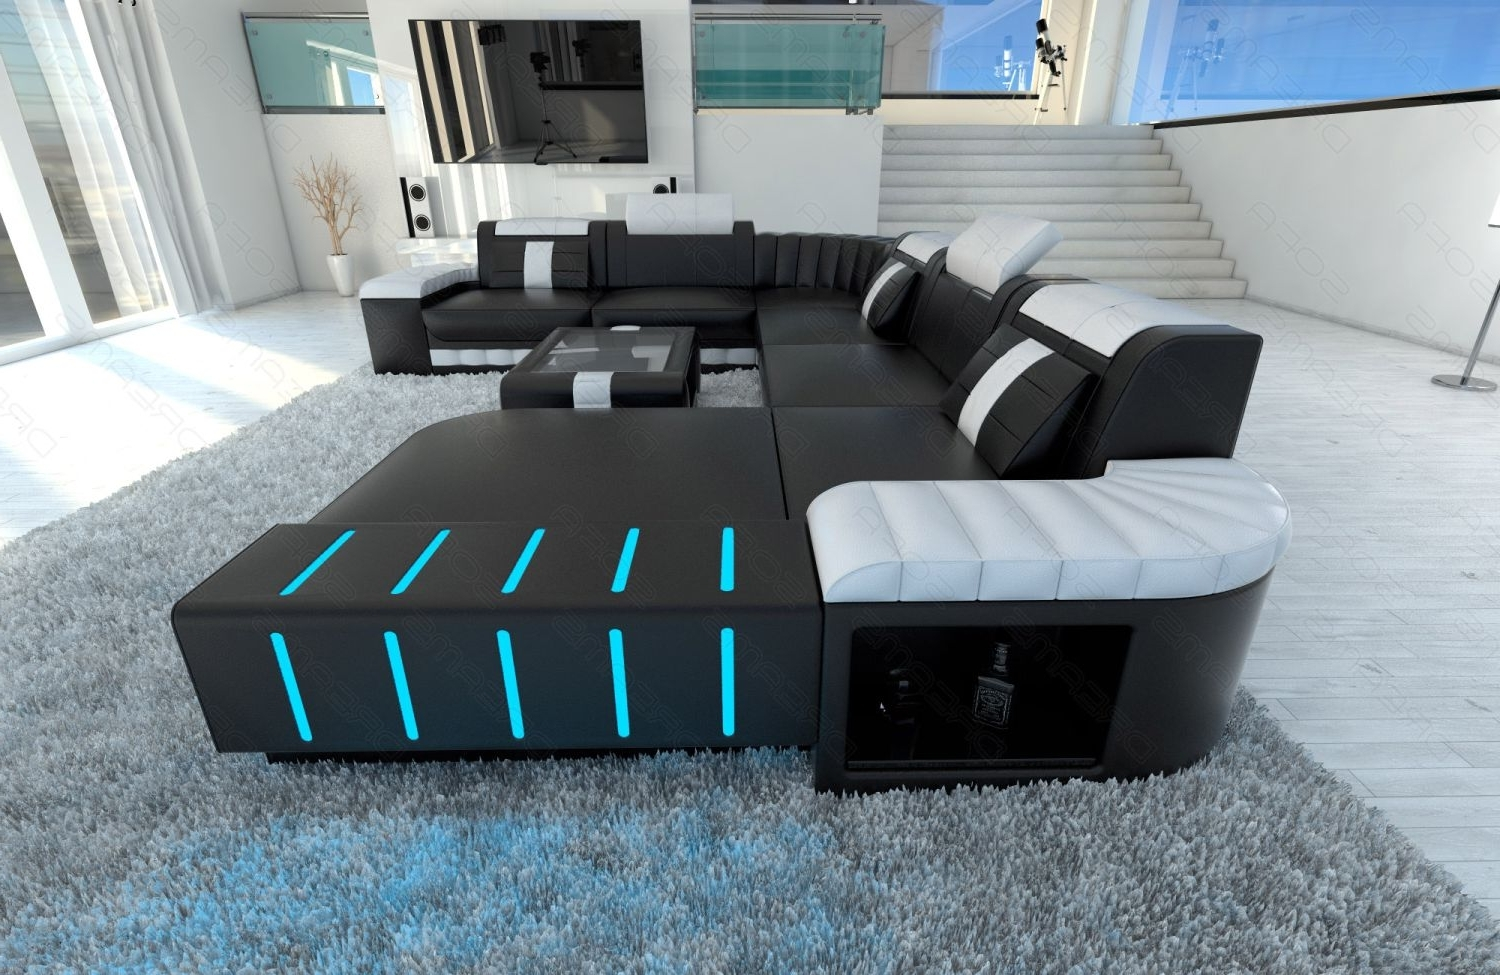 Xxl Sectional Sofa Bellagio Led U Shaped Black White (View 15 of 15)